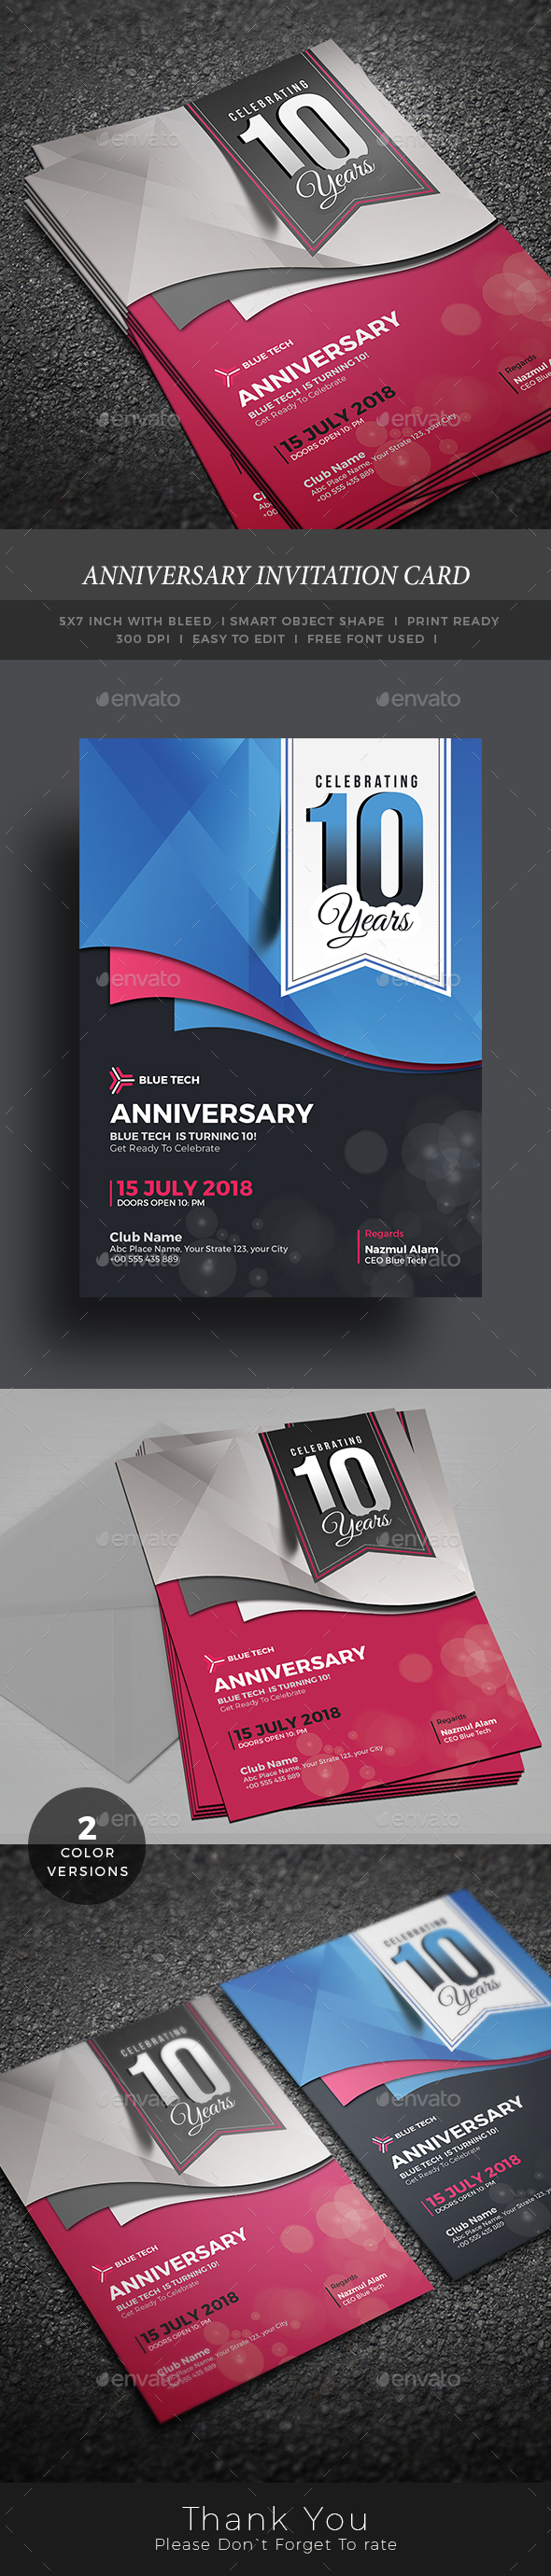 Anniversary Invitation Card